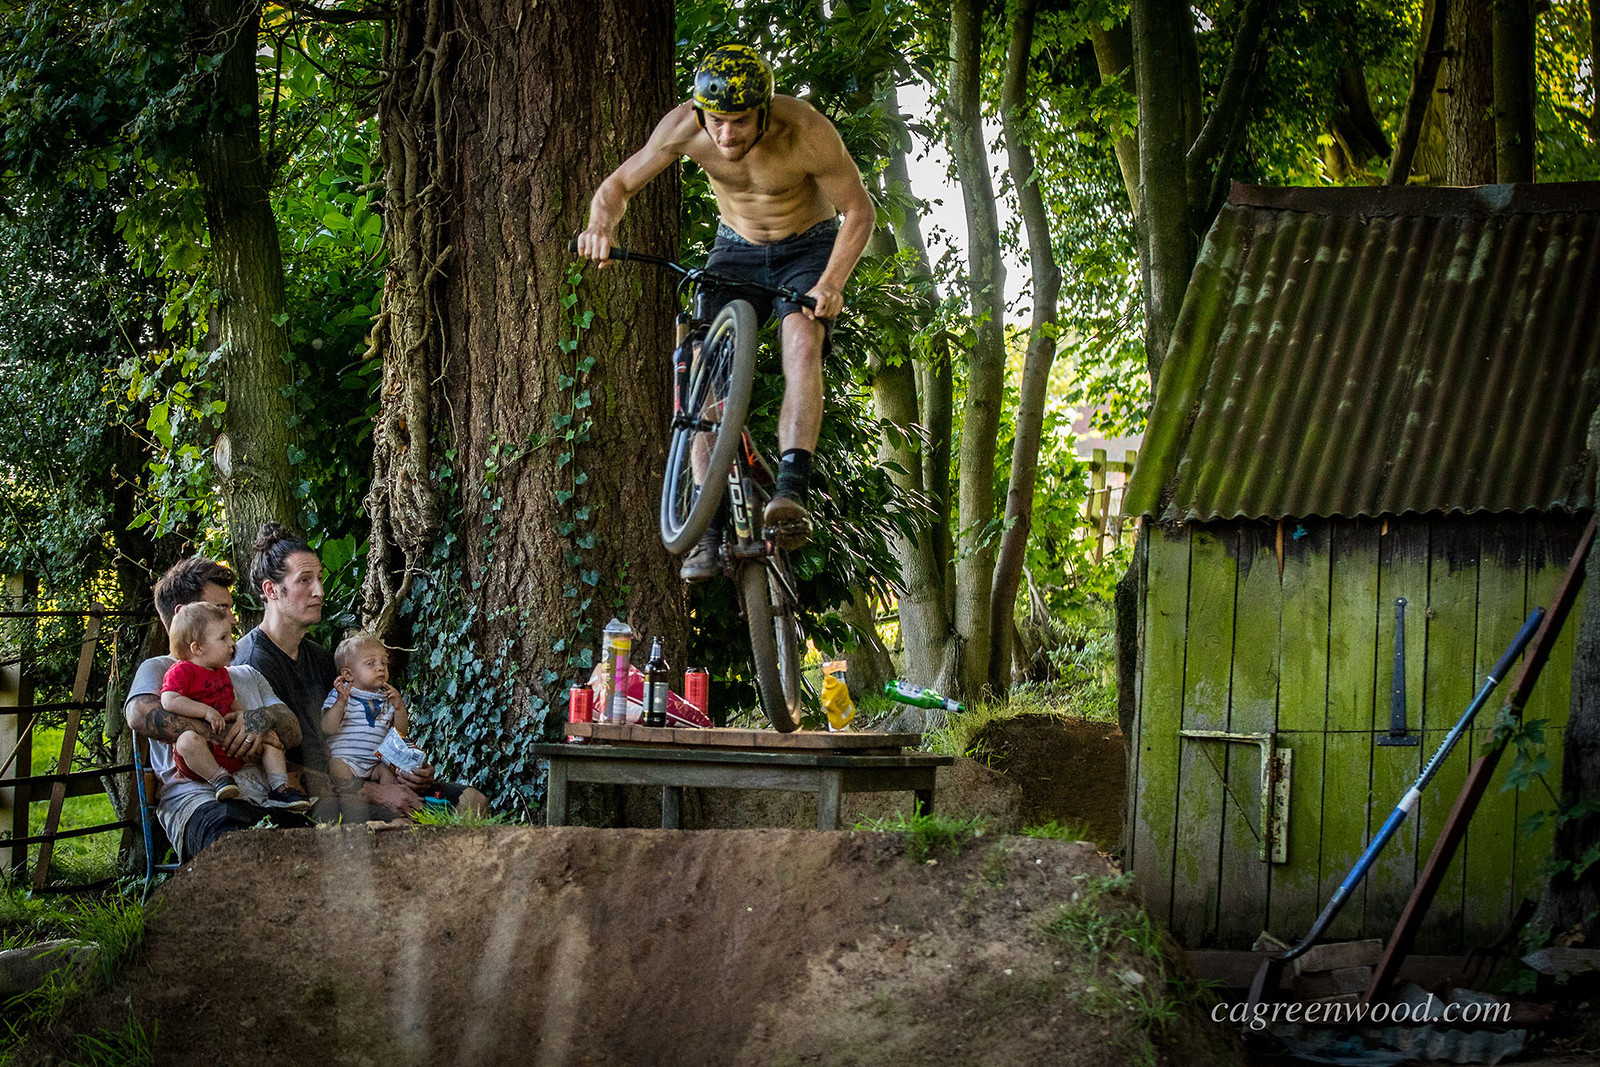 Disrupting Sunday Lunch at the Trails - cagreenwood - Mountain Biking Pictures - Vital MTB